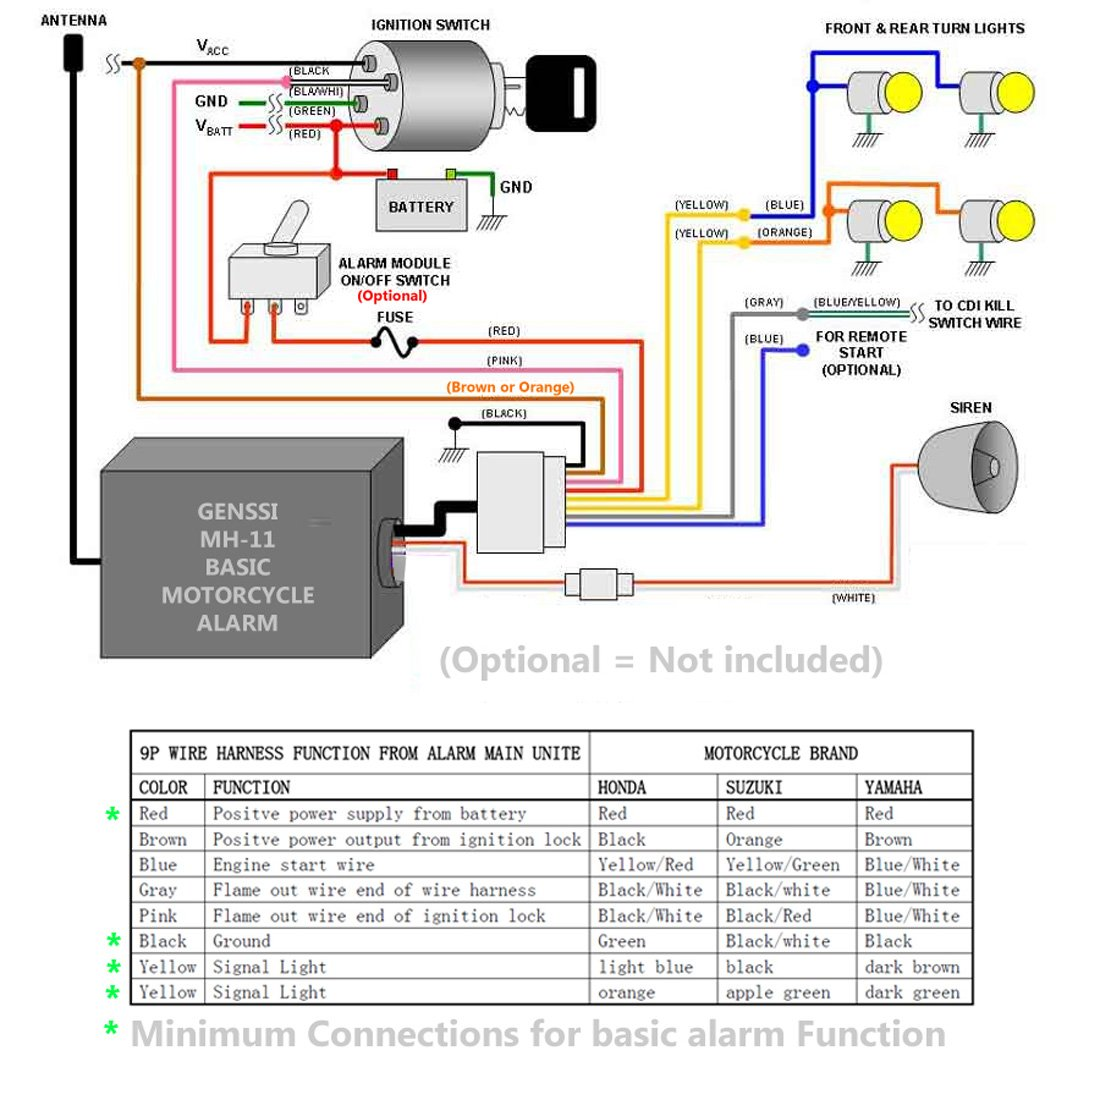 taotao 50 scooter cdi wiring diagram get free image about wiring diagram